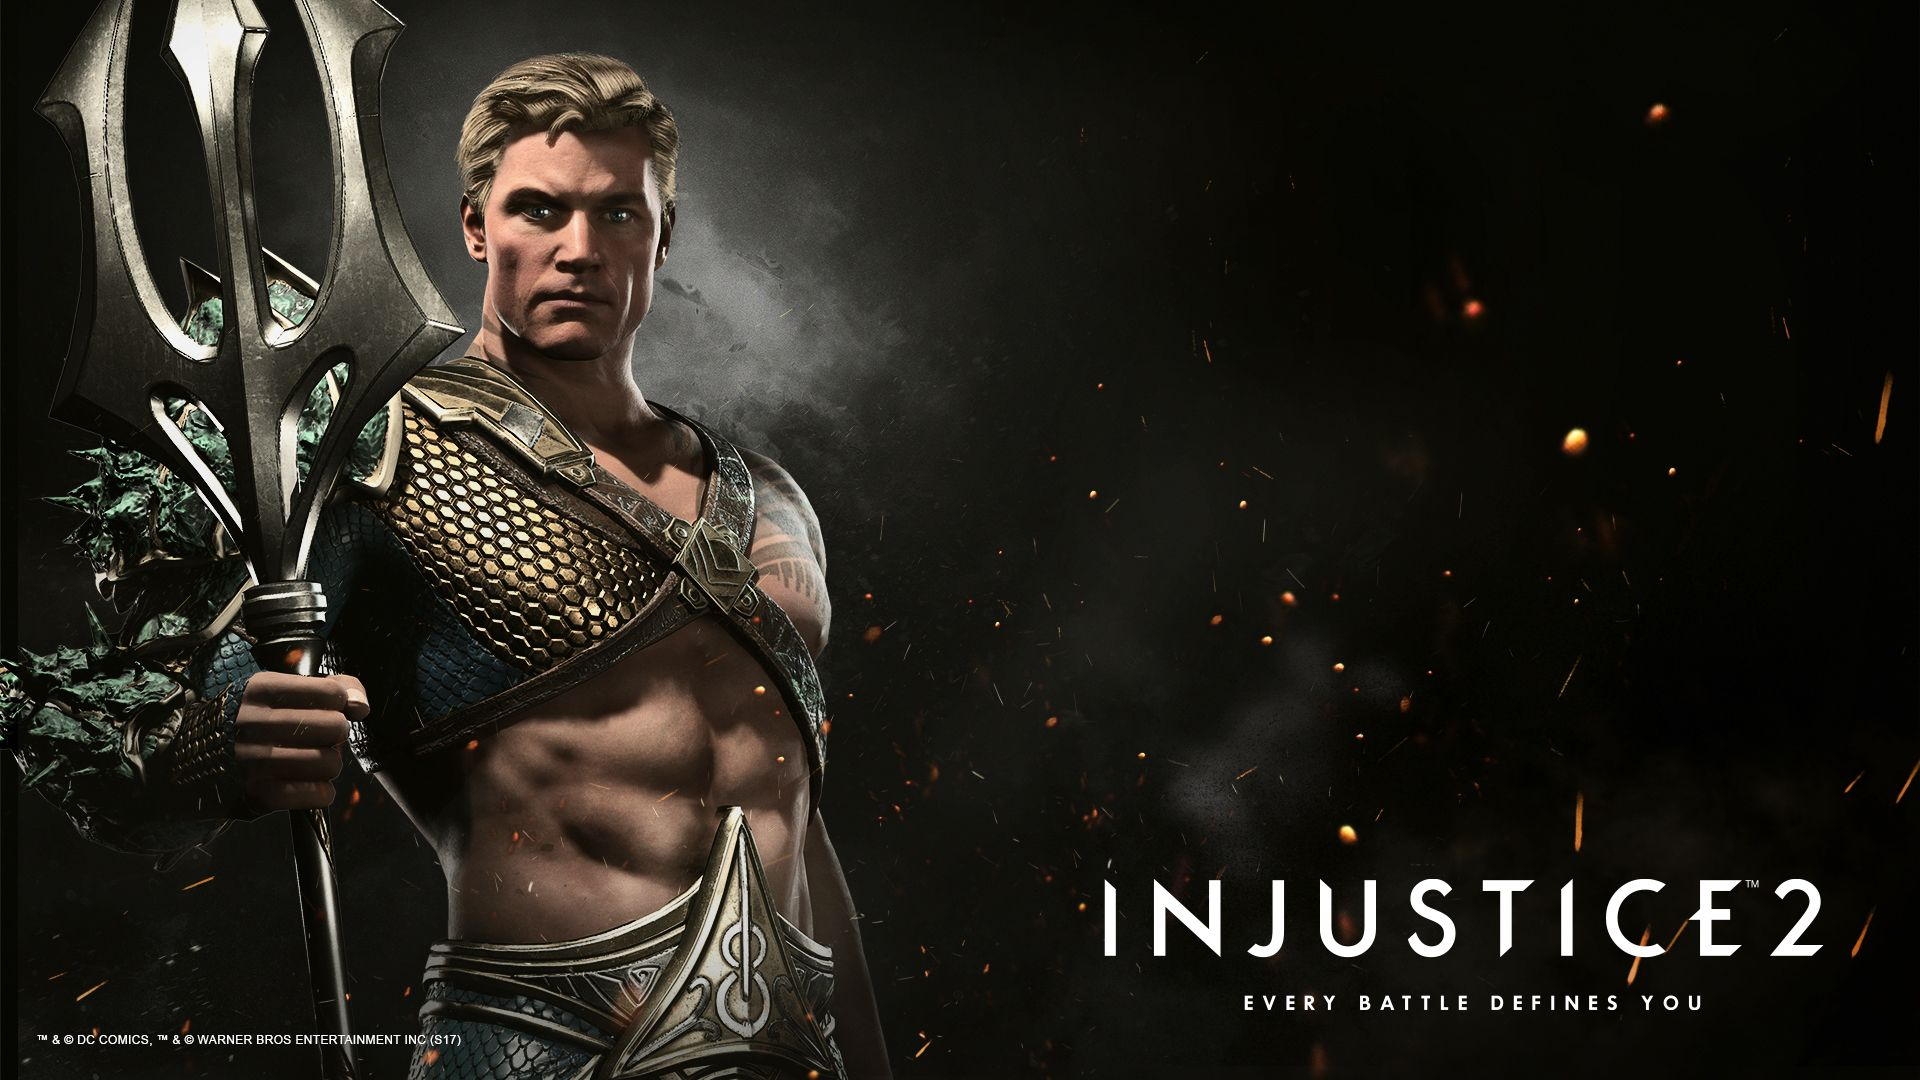 Arthur Curry (Injustice)